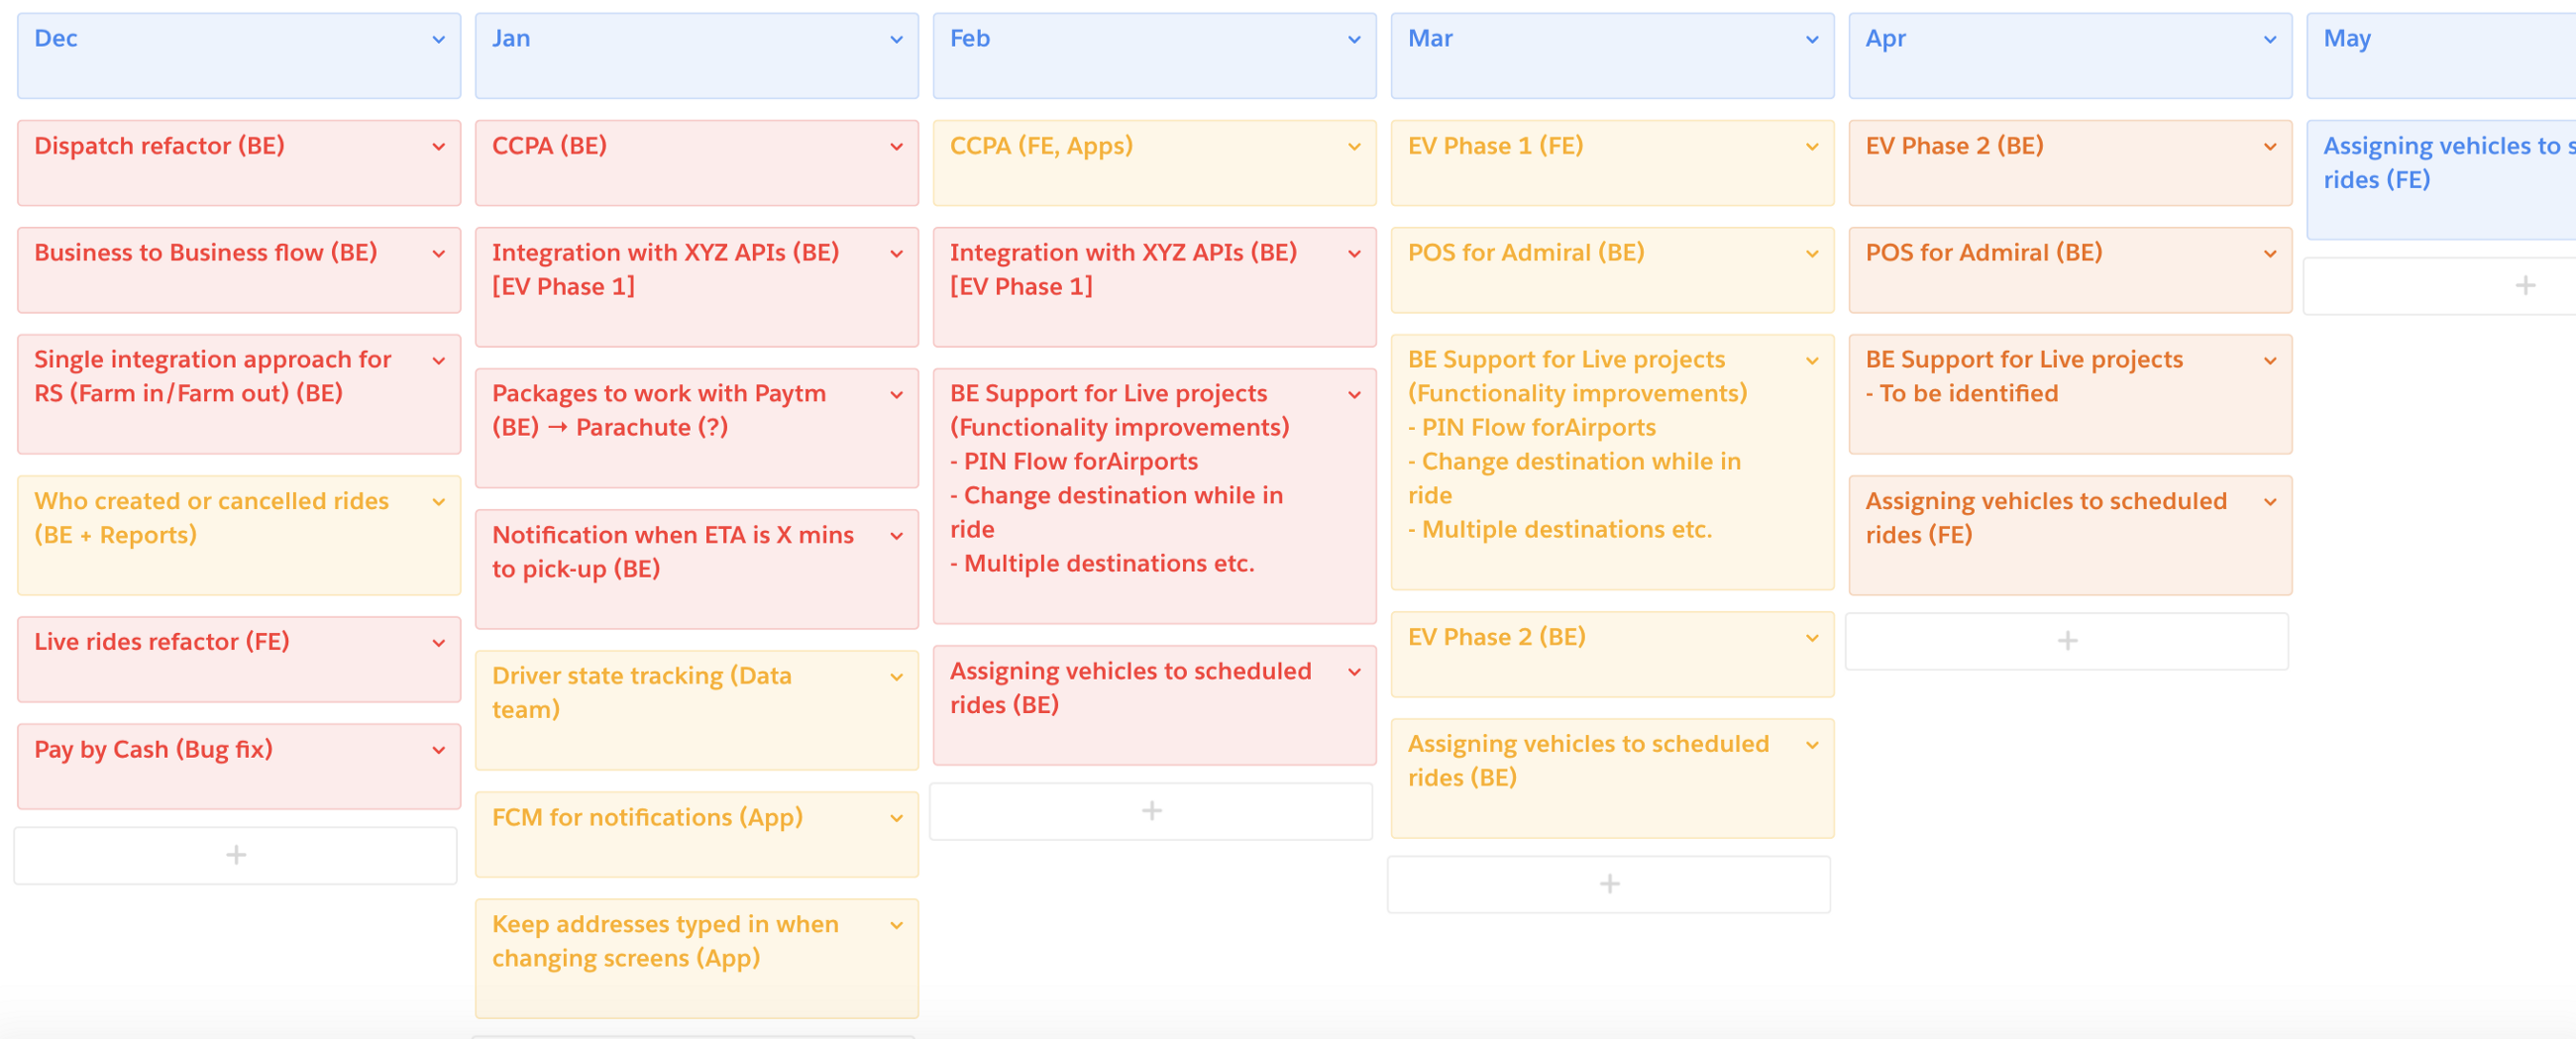 How to prioritize features and build a roadmap for B2B products